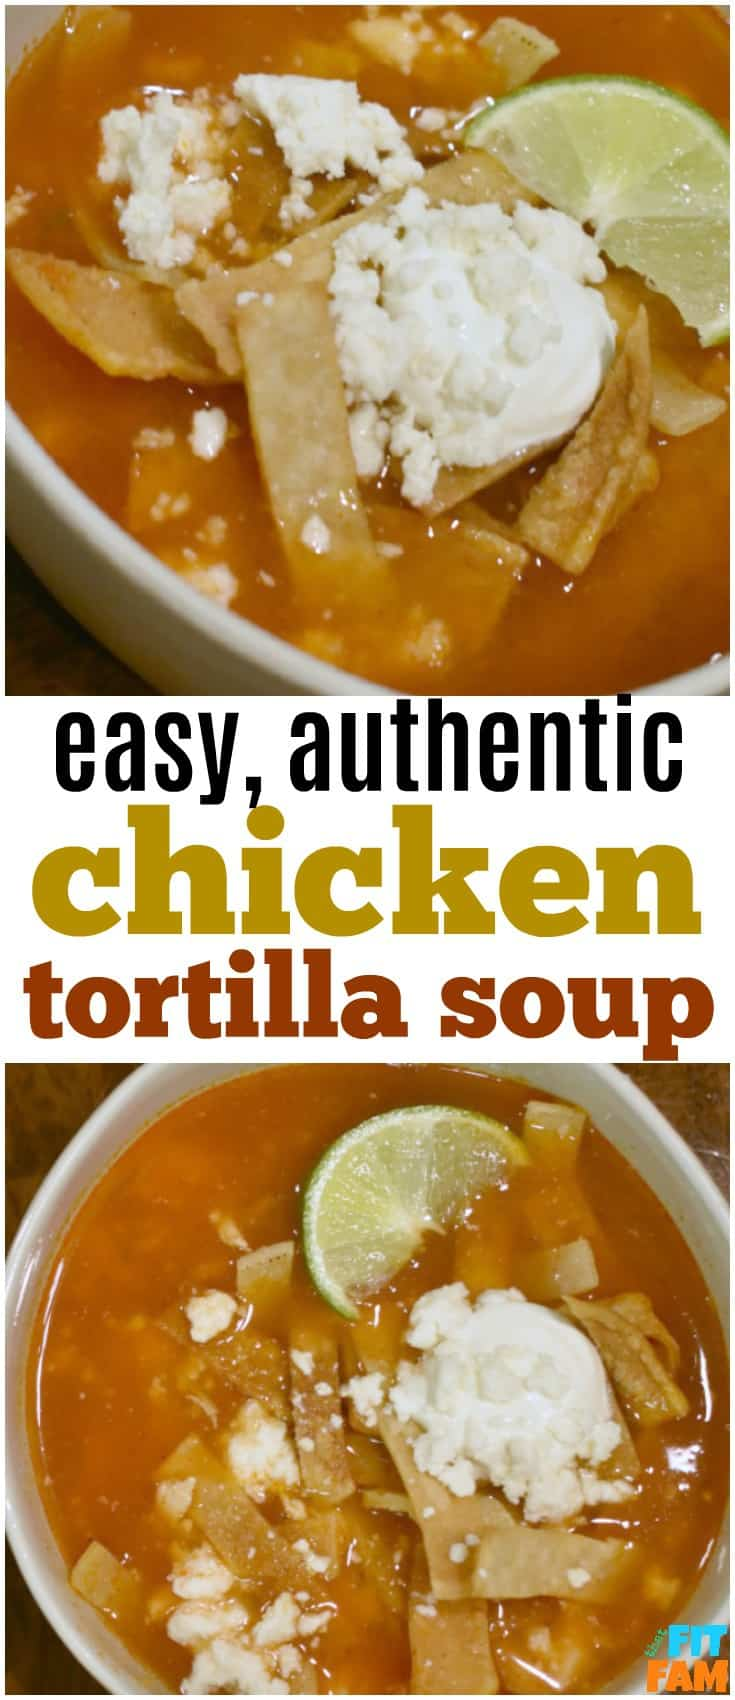 this is such a quick authentic tortilla soup recipe. it is so easy to make and perfect for winter. you can also make this with leftover turkey breast from Thanksgiving. Favorite comfort food!